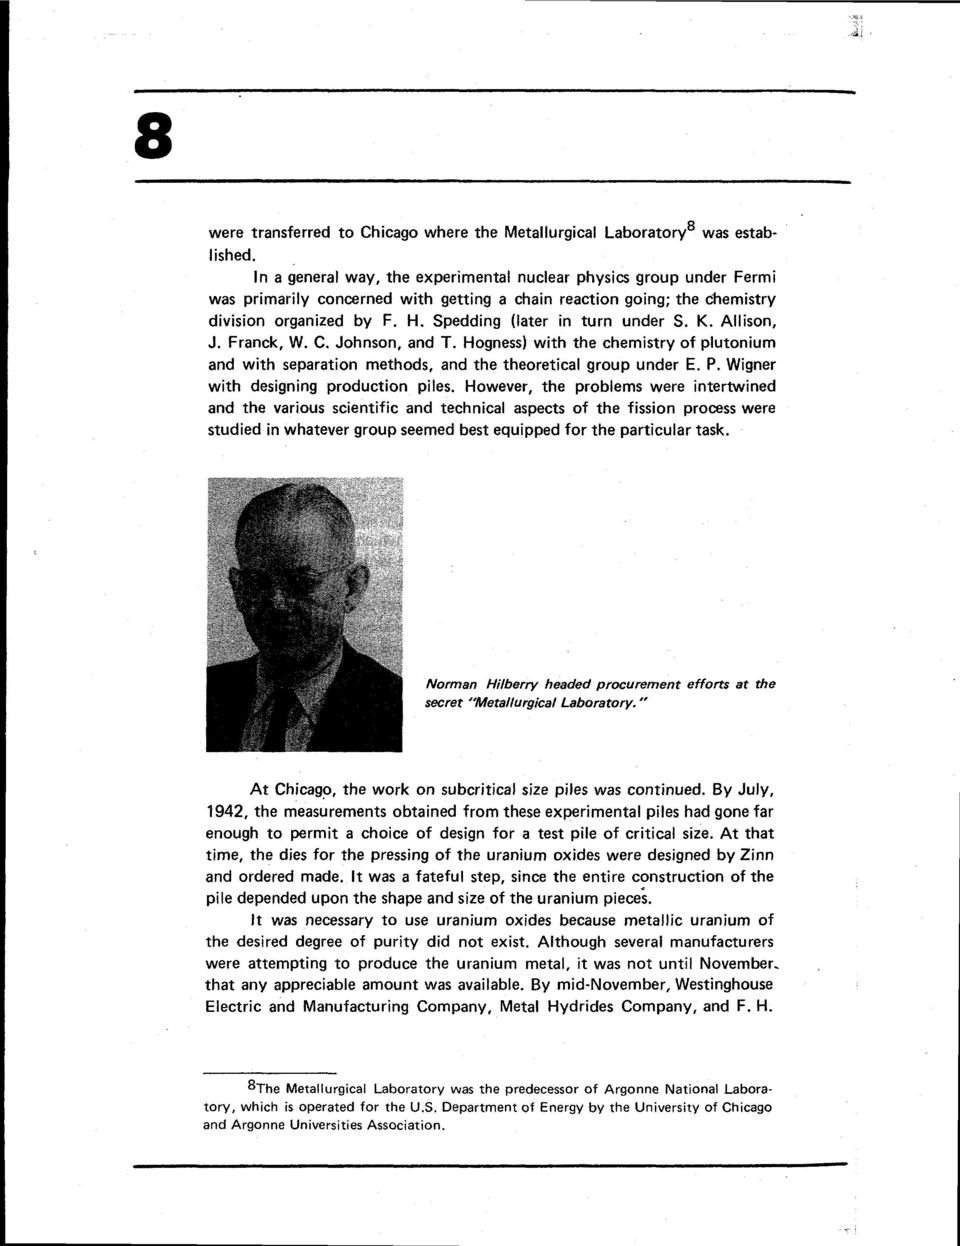 Spedding (later in turn under S. K. Allison, J. Franckr W. C. Johnson, and T. Hogness) with the chemistry of plutonium and with separation methods, and the theoretical group under E. P.